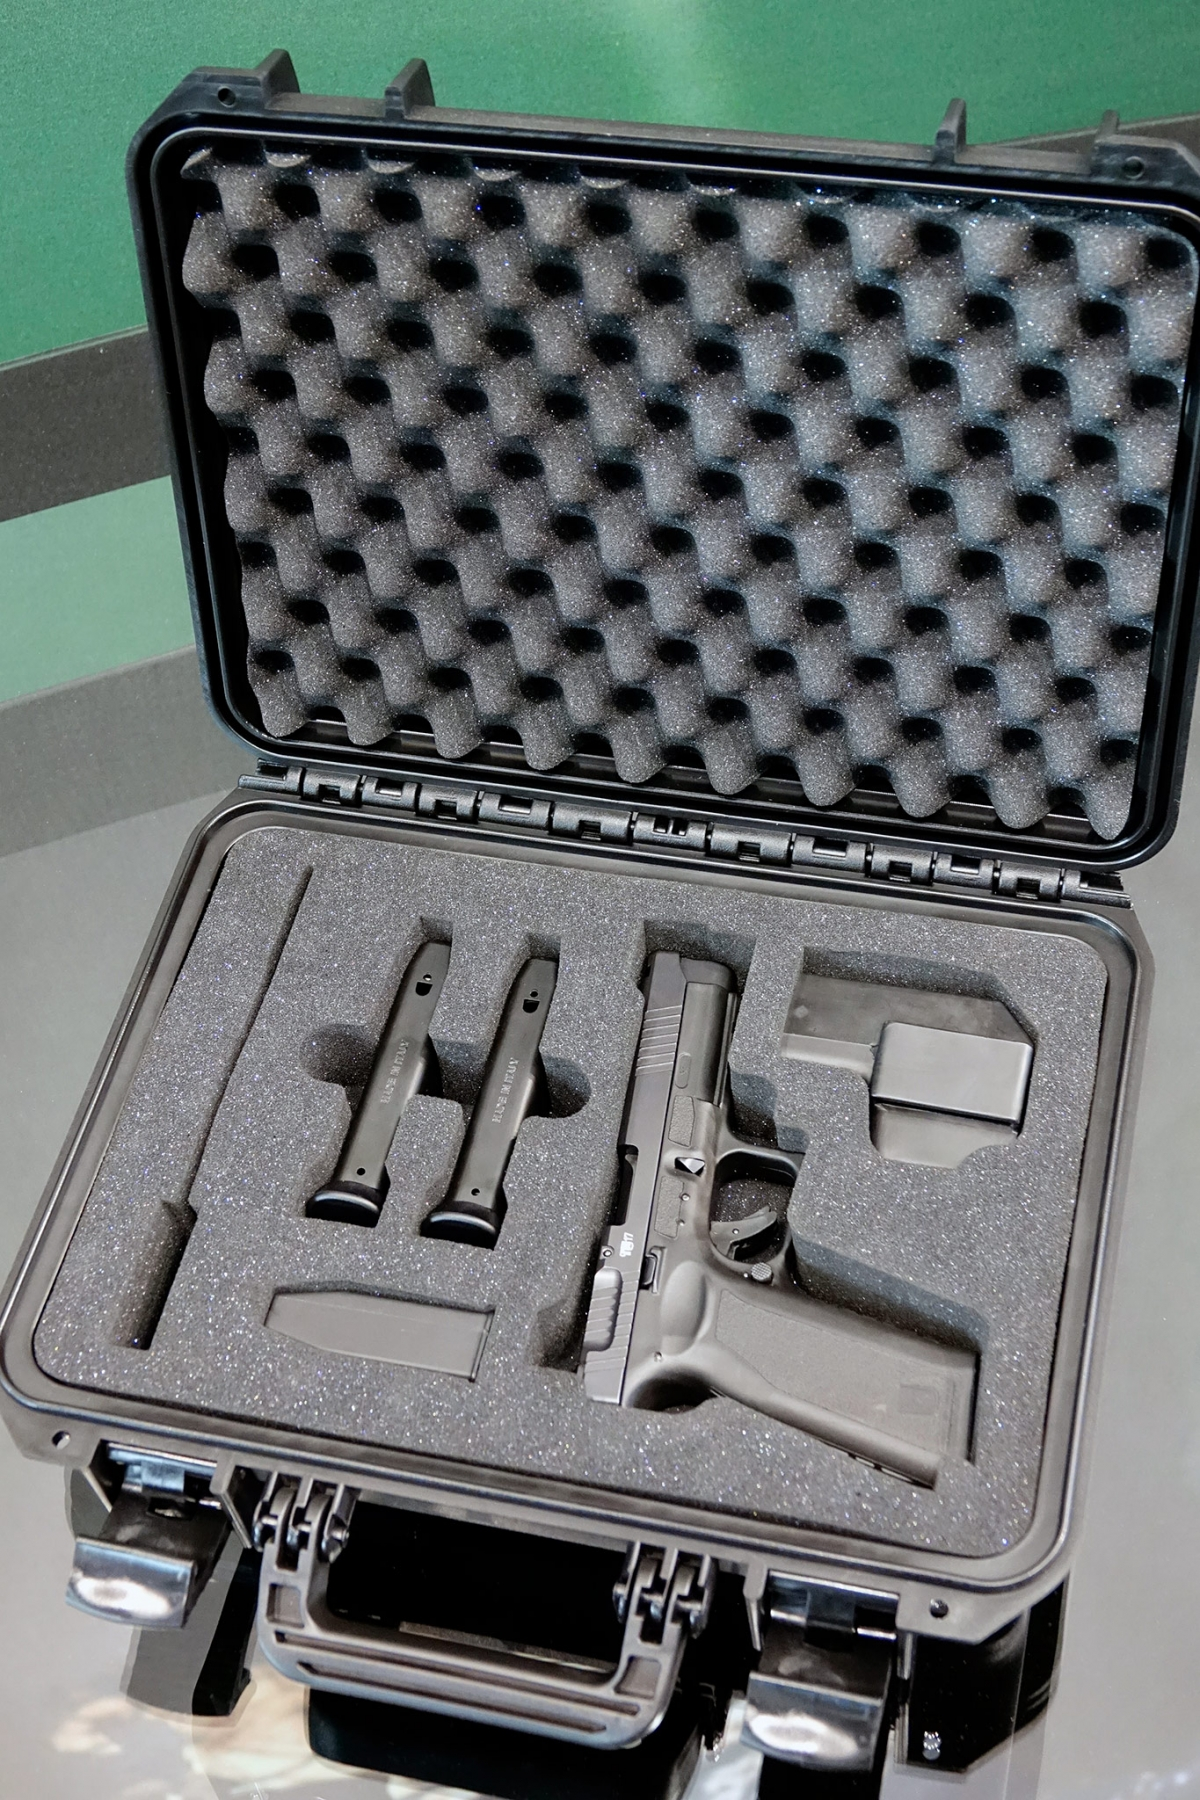 The Czech Small Arms Vz.15 pistol is sold in a foam-padded special case, jointly with two magazines, a magazine loader, a cleaning rod, and a dedicated holster